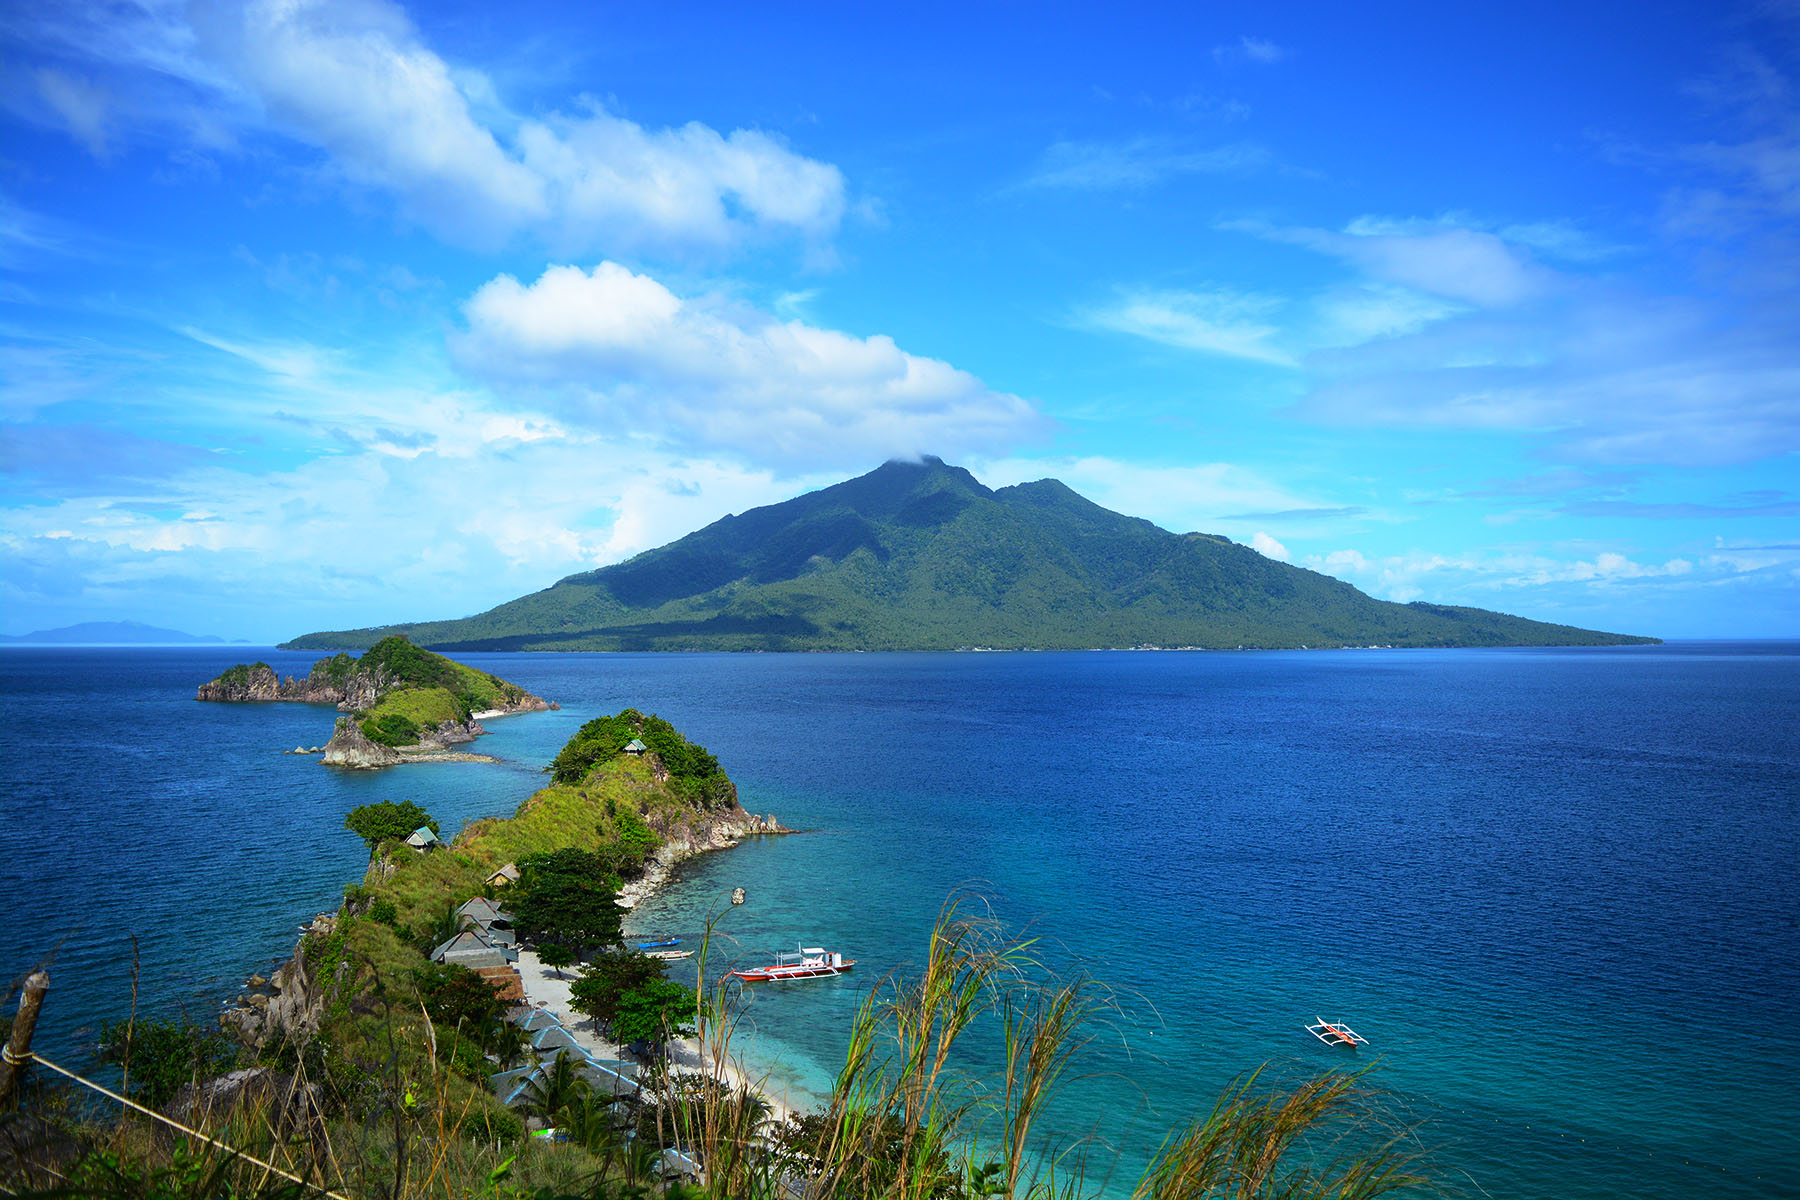 LEYTE & BILIRAN: 5-Day Budget Travel Guide + Itinerary